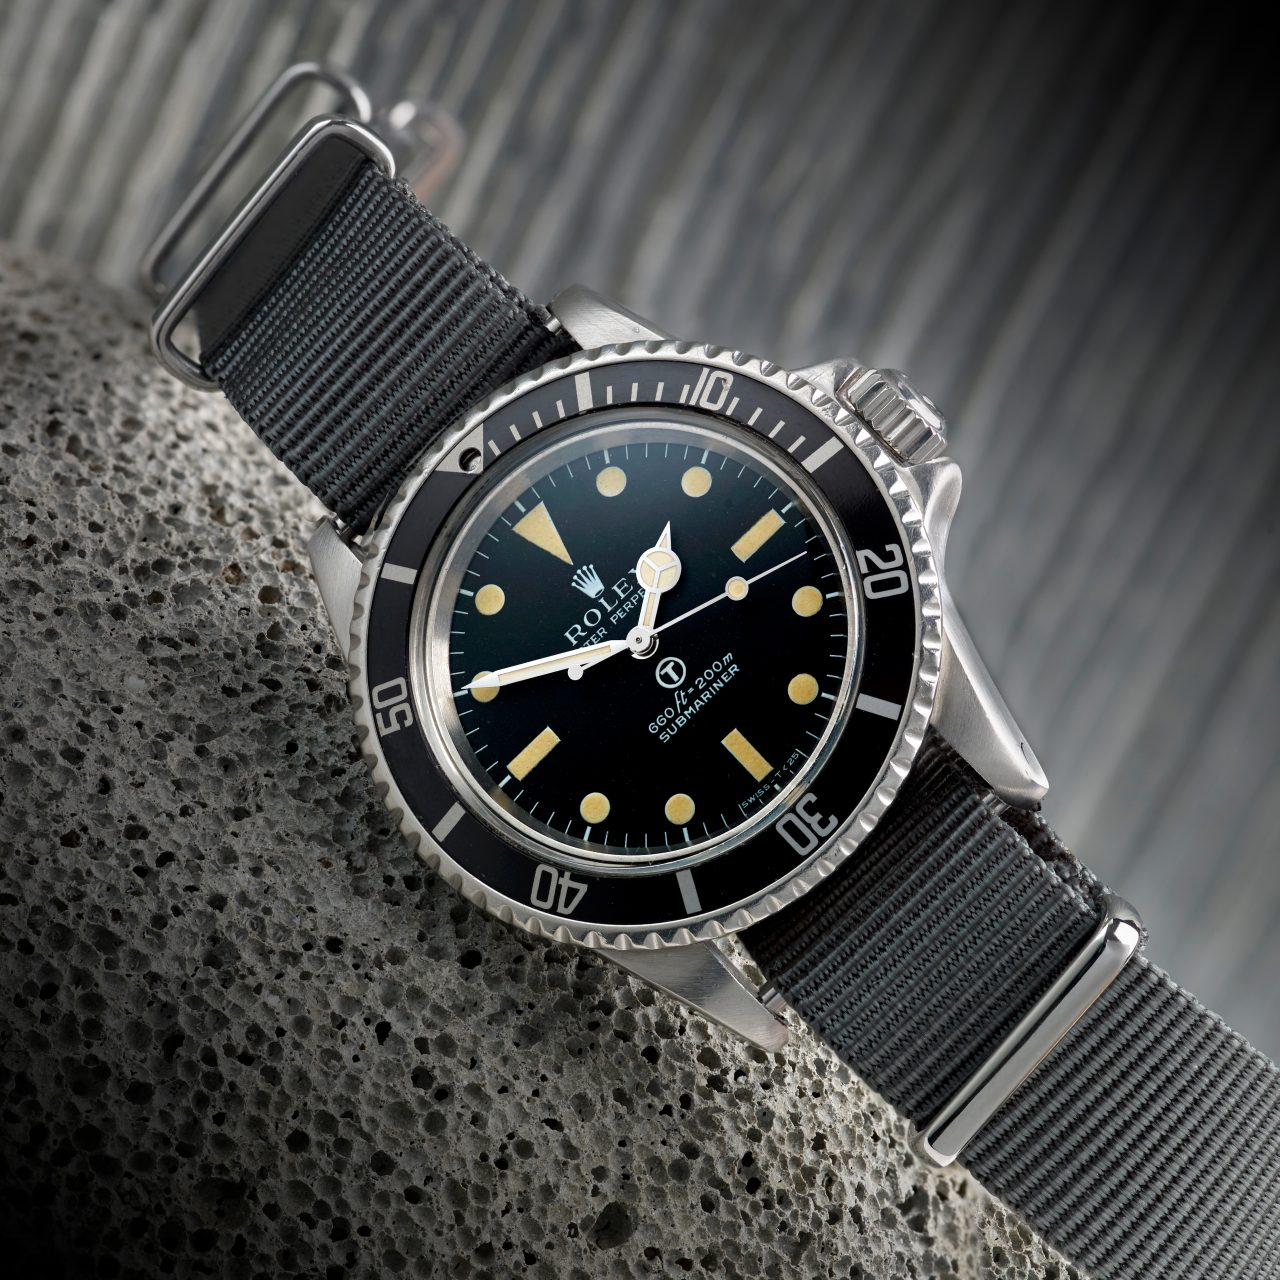 Rolex Military Submariner Designated for British Army Diver Sells for beyond £29,000